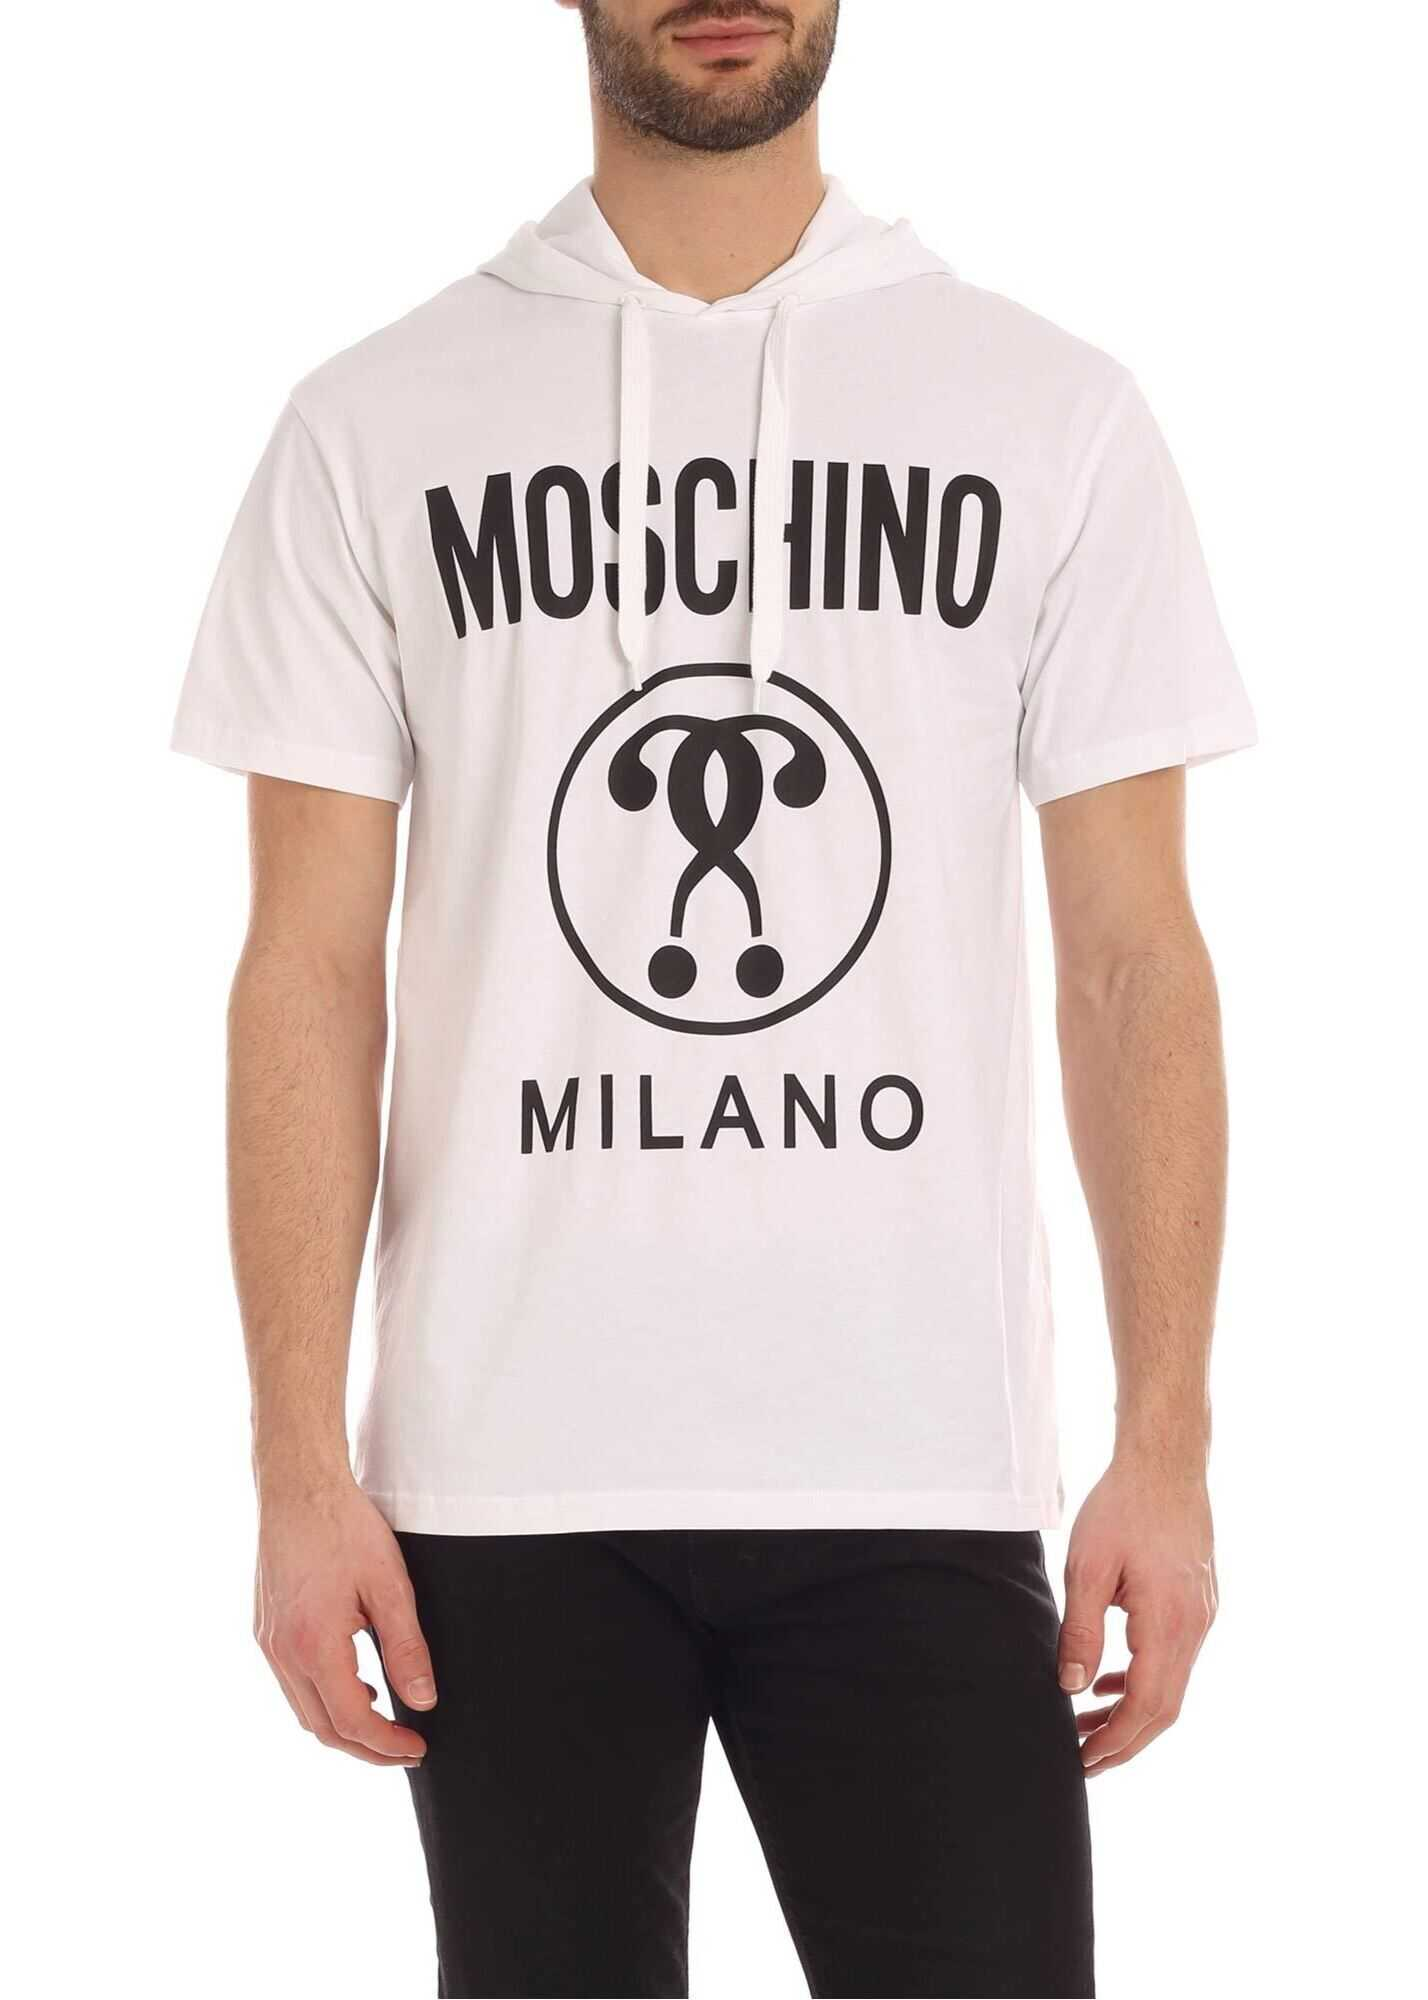 Moschino Double Question Mark T-Shirt In White White